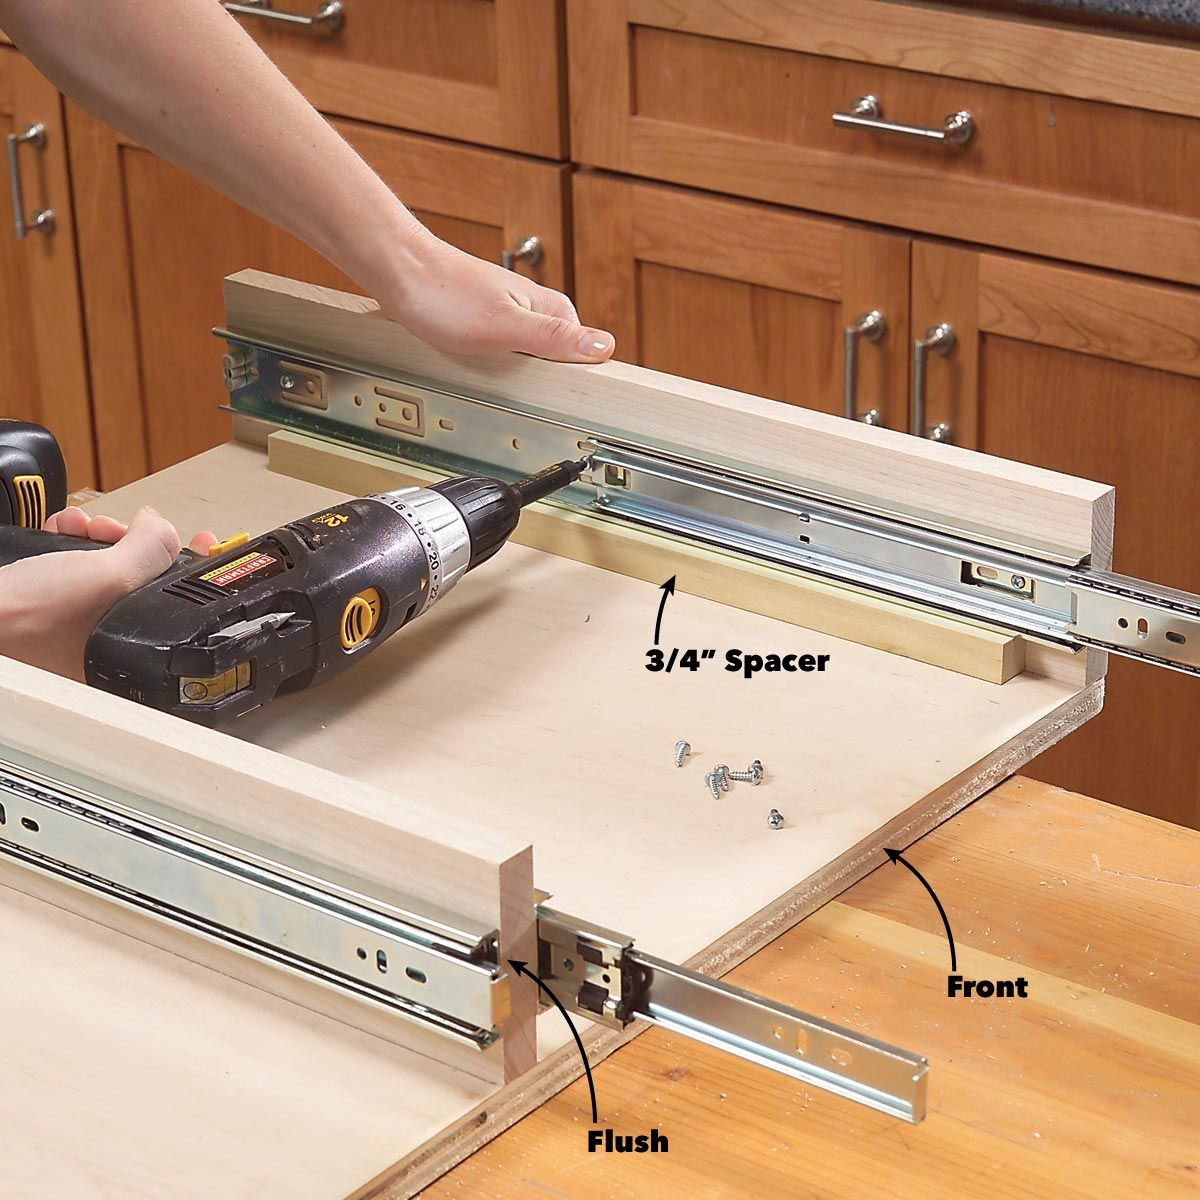 How To Build Pull Out Under Sink Storage Trays For Your Kitchen Diy Pull Out Shelves Kitchen Cabinet Storage Solutions Kitchen Sink Storage